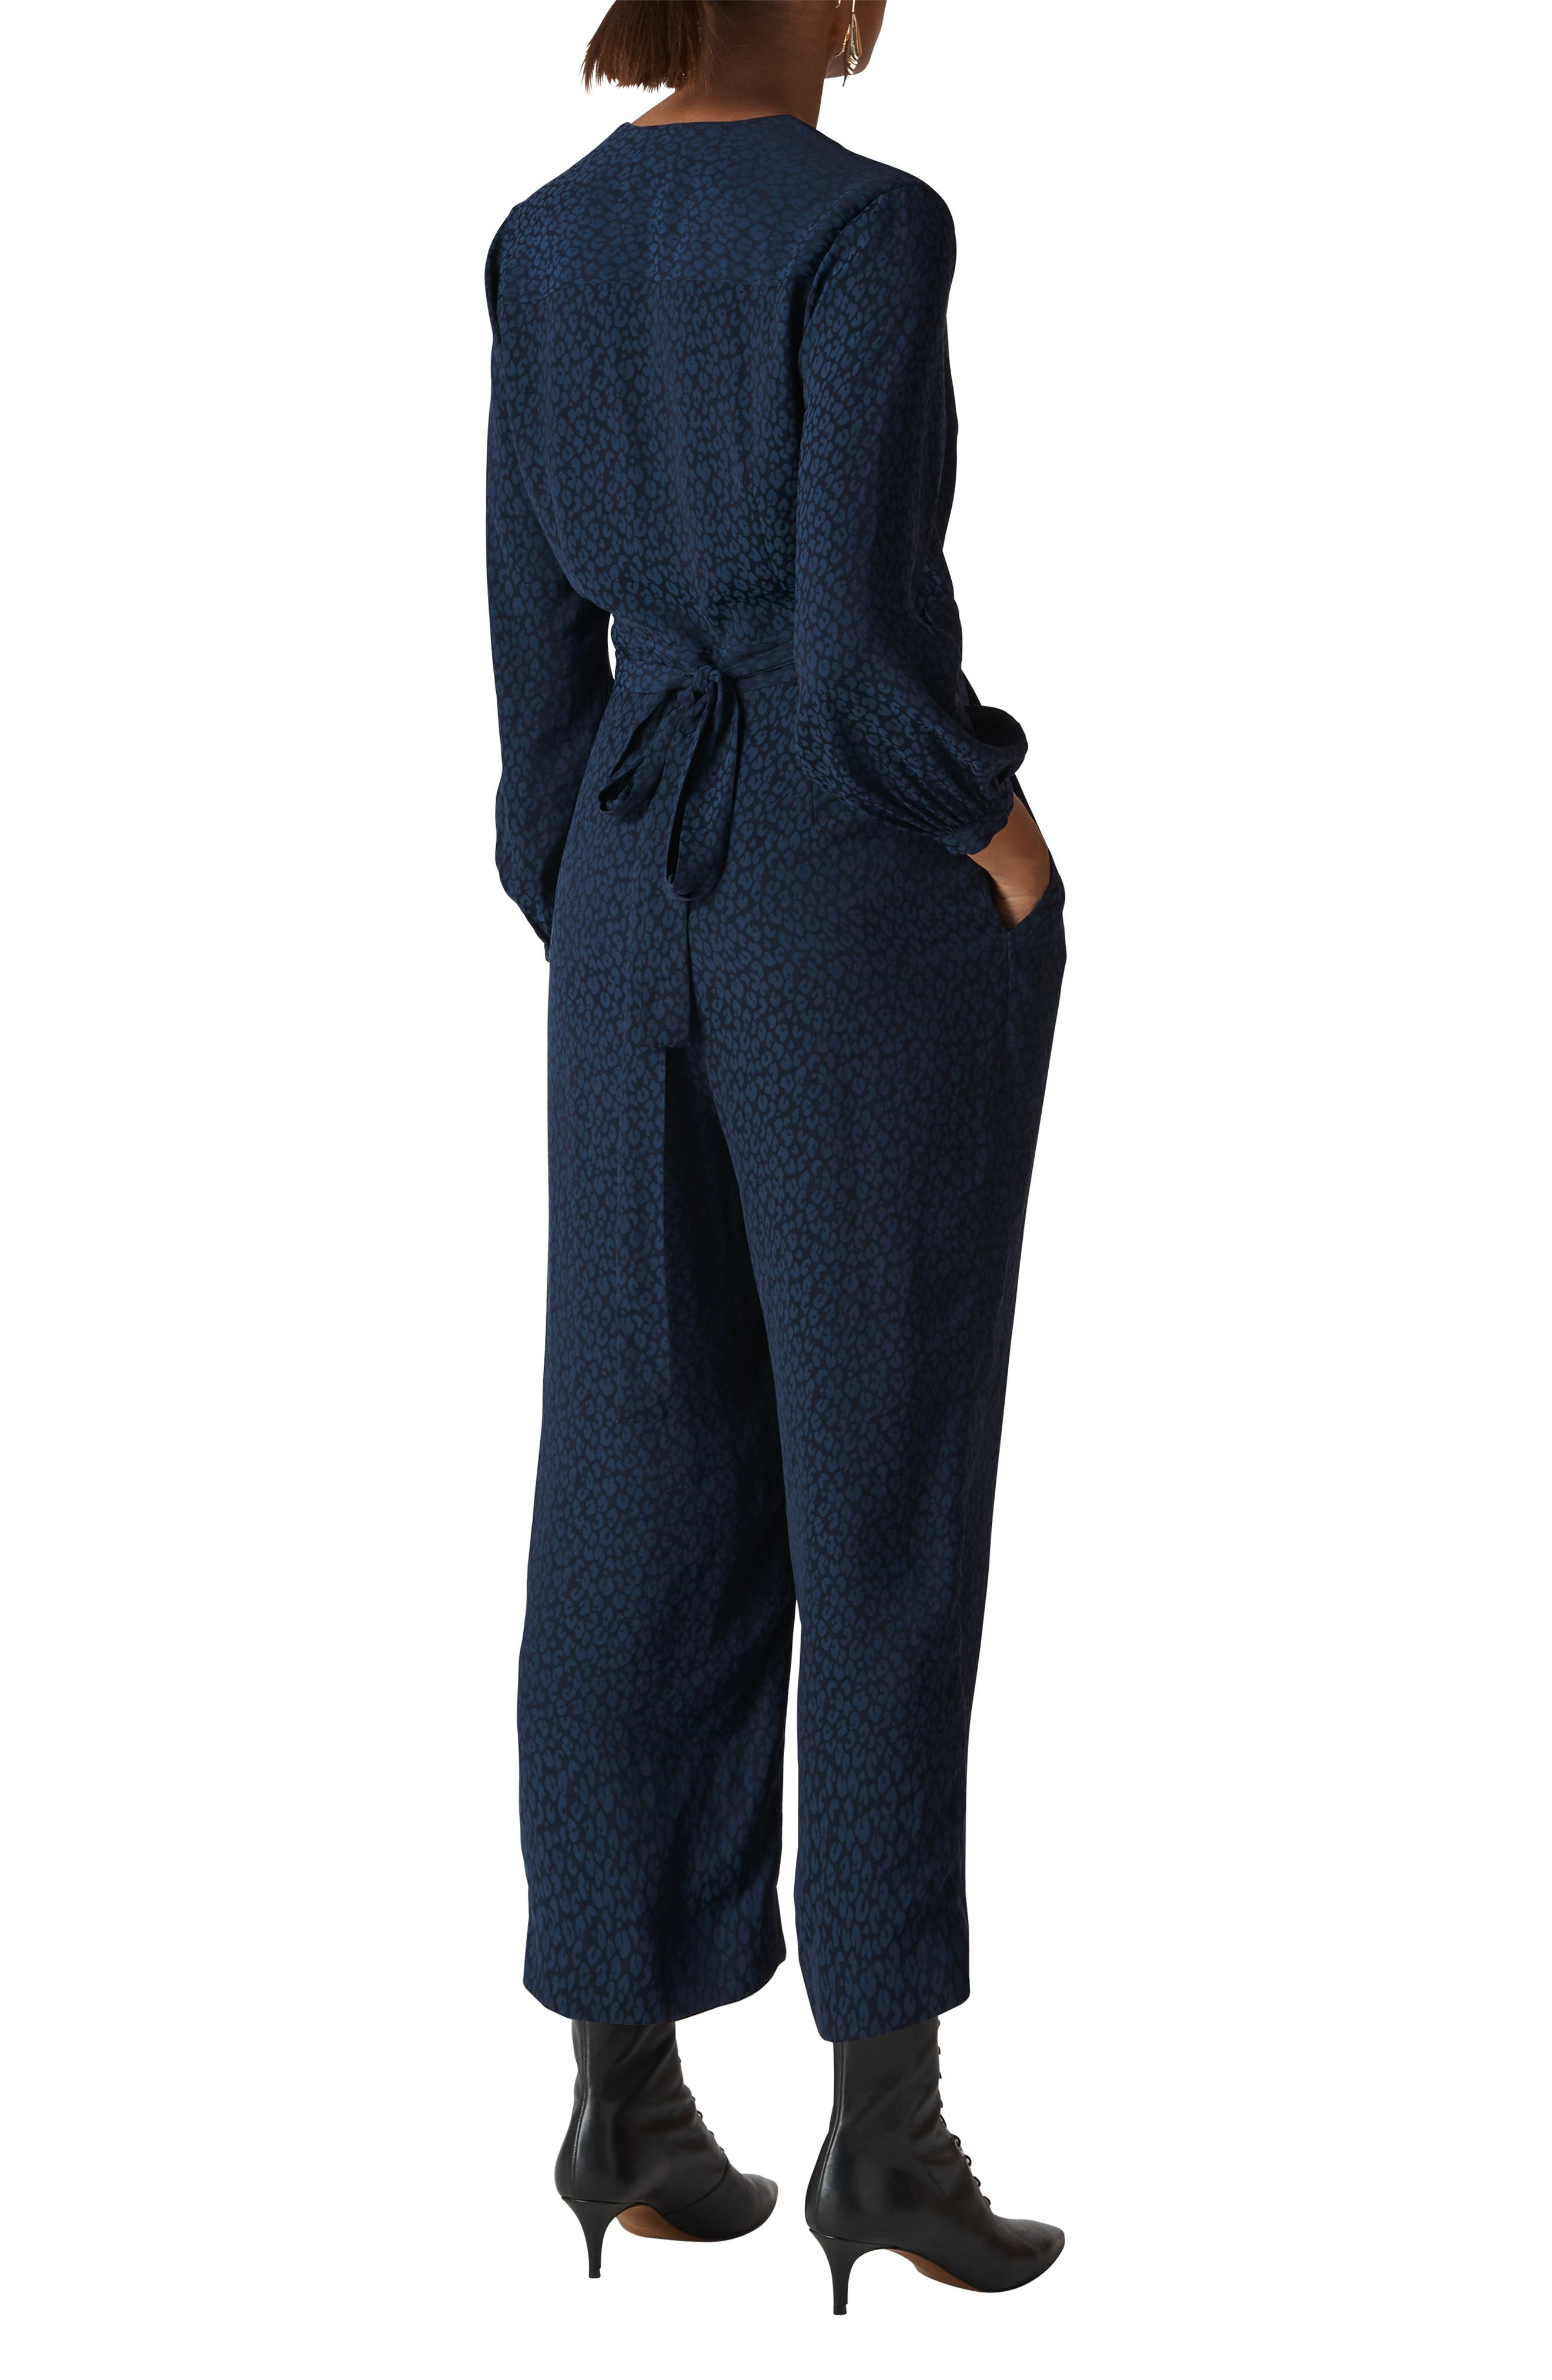 WHISTLES,                             Animal Jacquard Tie Jumpsuit,                             Alternate thumbnail 2, color,                             400